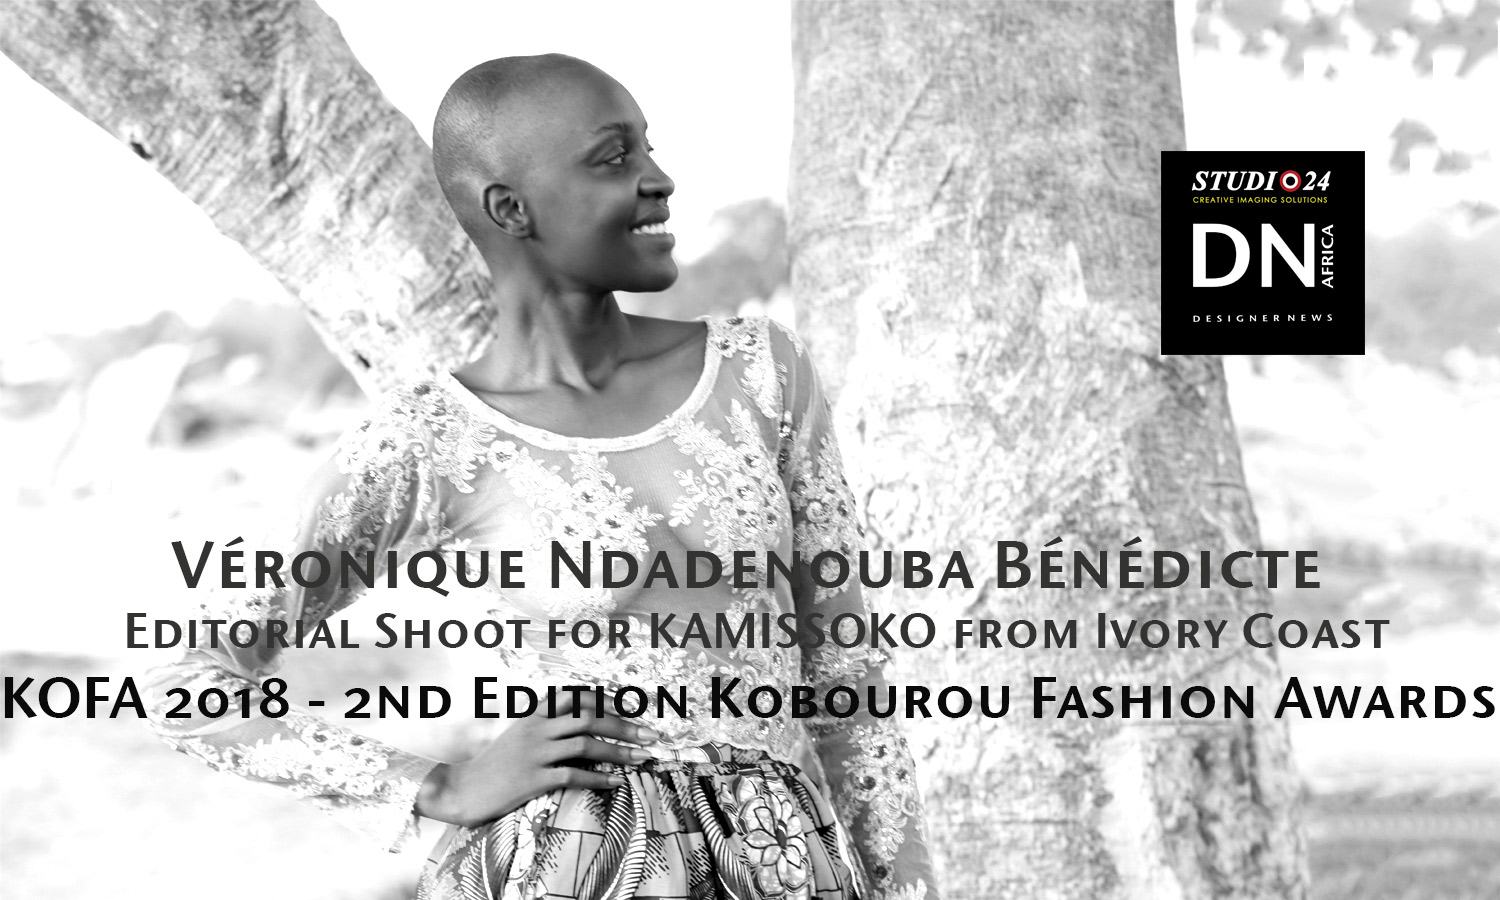 AFRICA FASHION STYLE MAGAZINE - KOFA 2nd Edition Organized by Hal Ebene Kobourou Fashion Awards from Parakou (Benin) – Designer KAMISSOKO from Ivory Coast by Ibrahim KAMISSOKO - Model VÉRONIQUE NDADENOUBA BÉNÉDICTE from Chad – Exclusive contents for DN AFRICA and STUDIO 24 NIGERIA